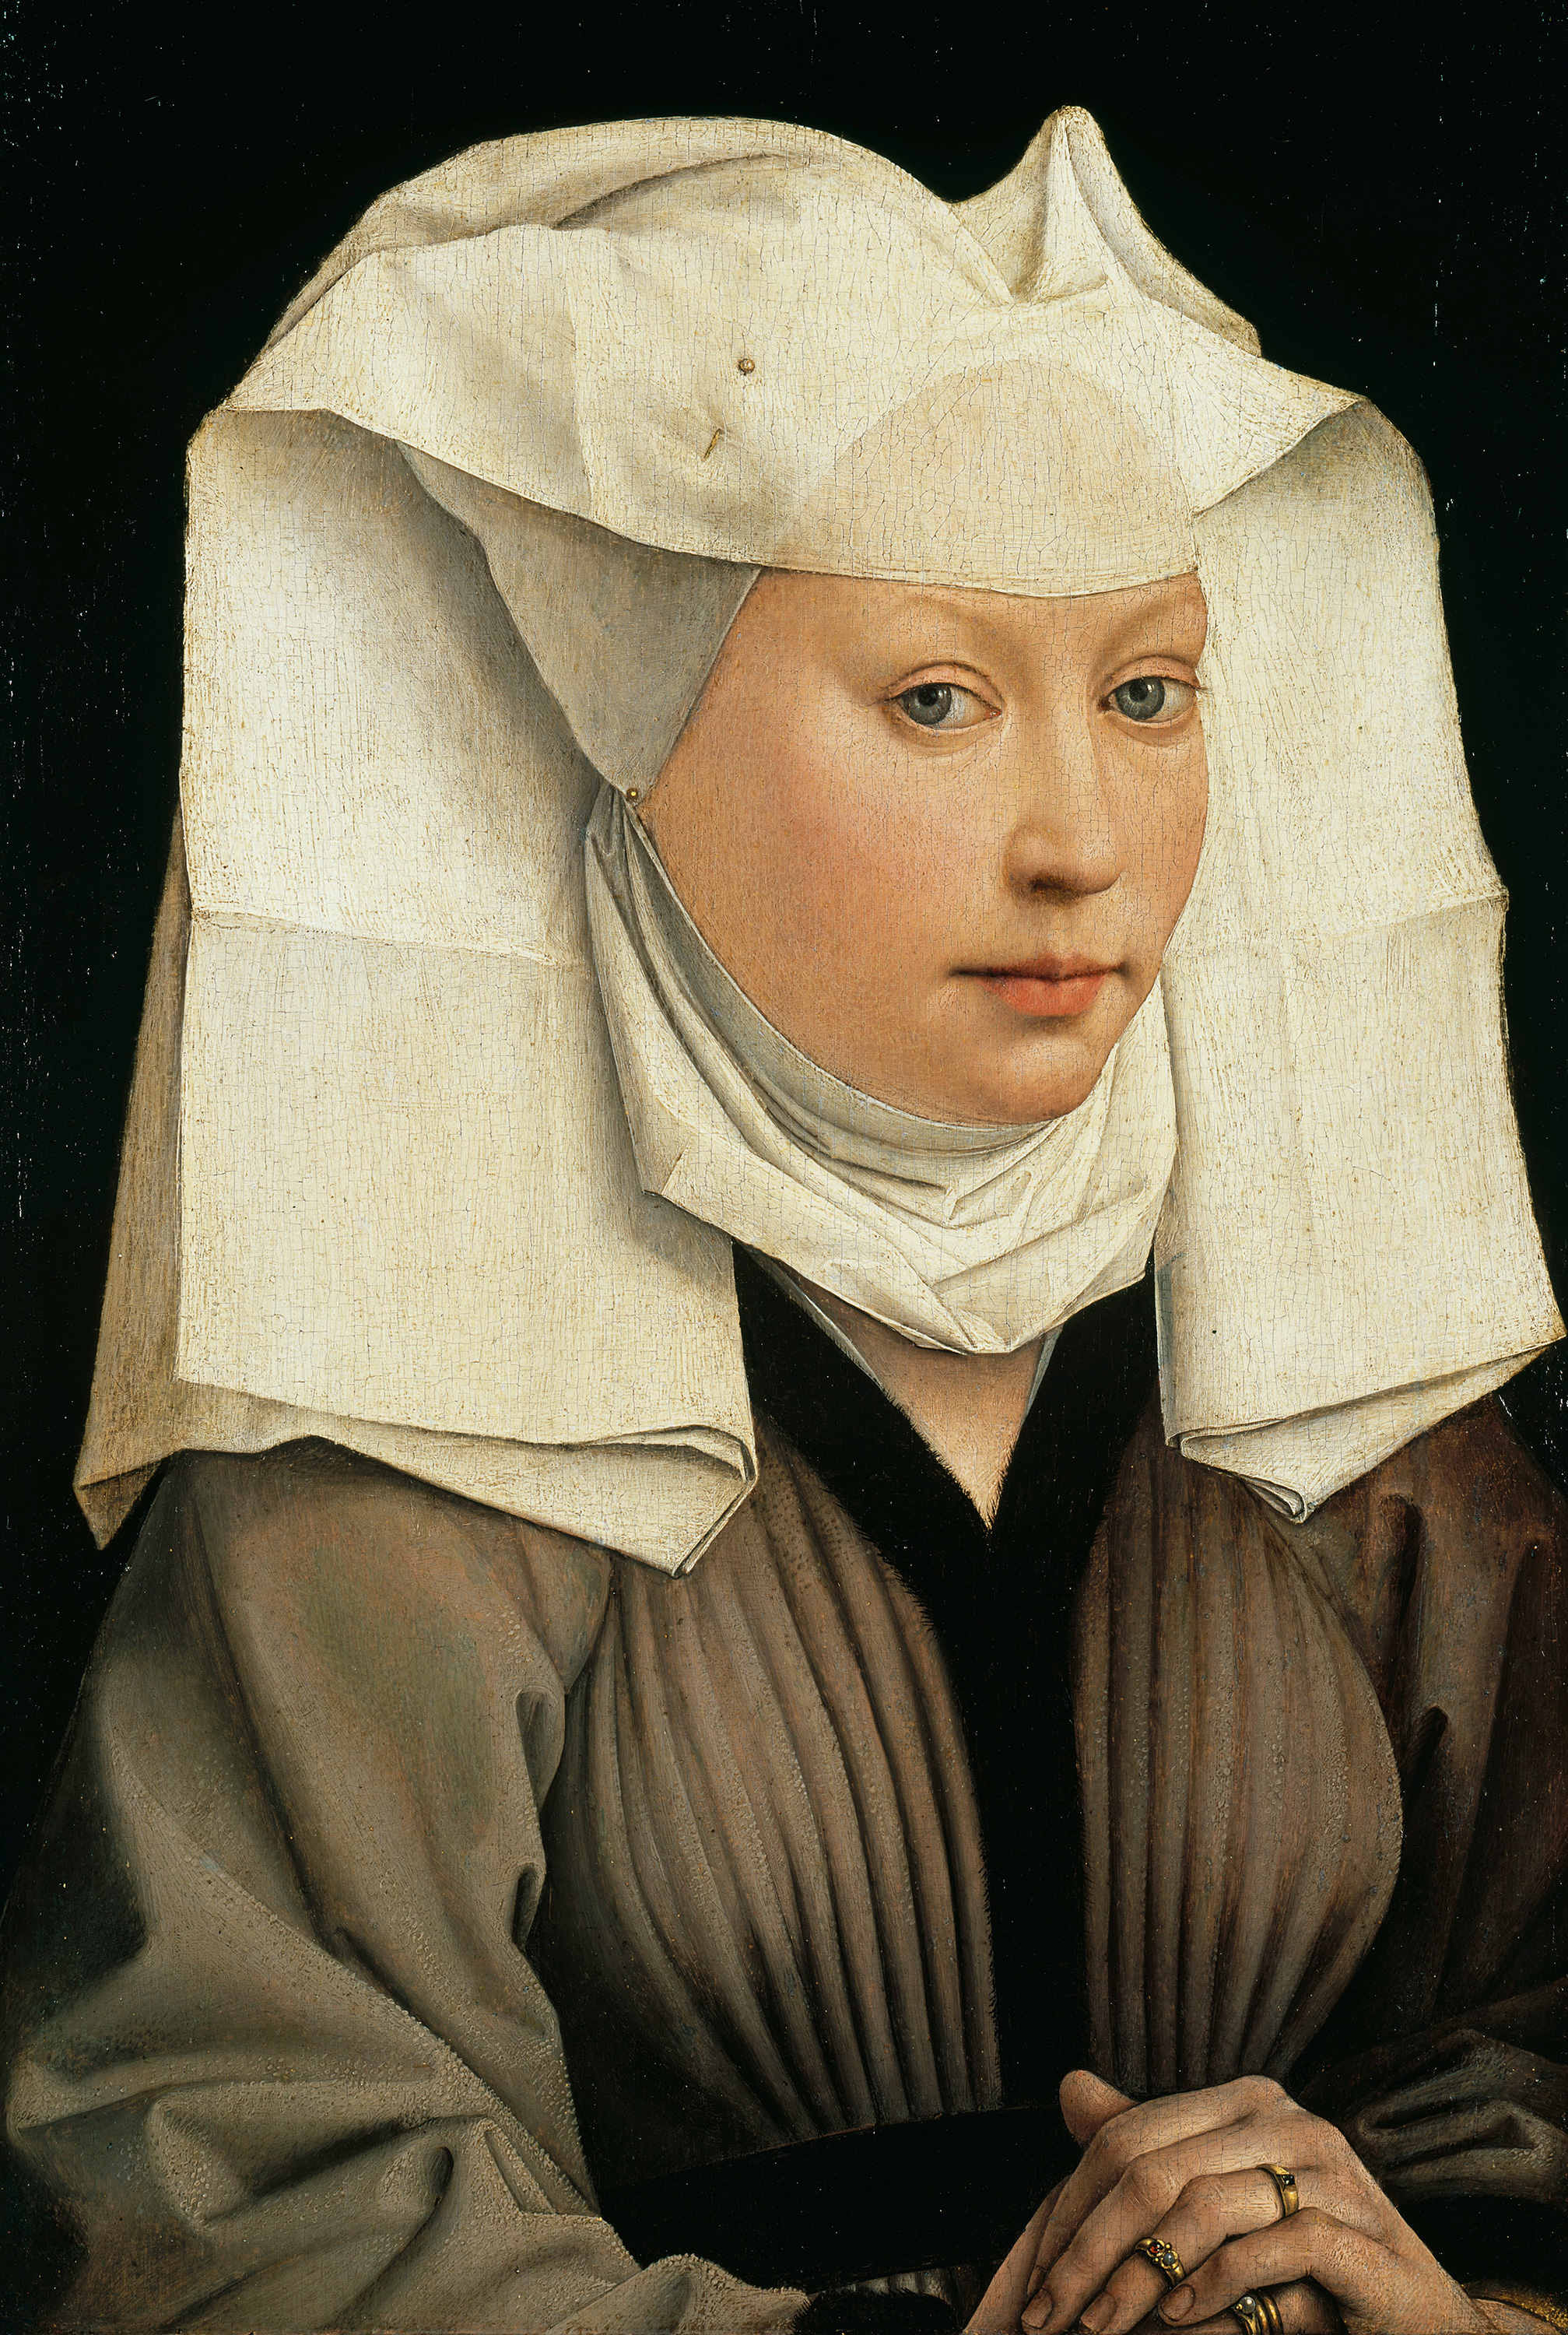 Woman with a Winged Bonnet, 1440 — Rogier van der Weyden